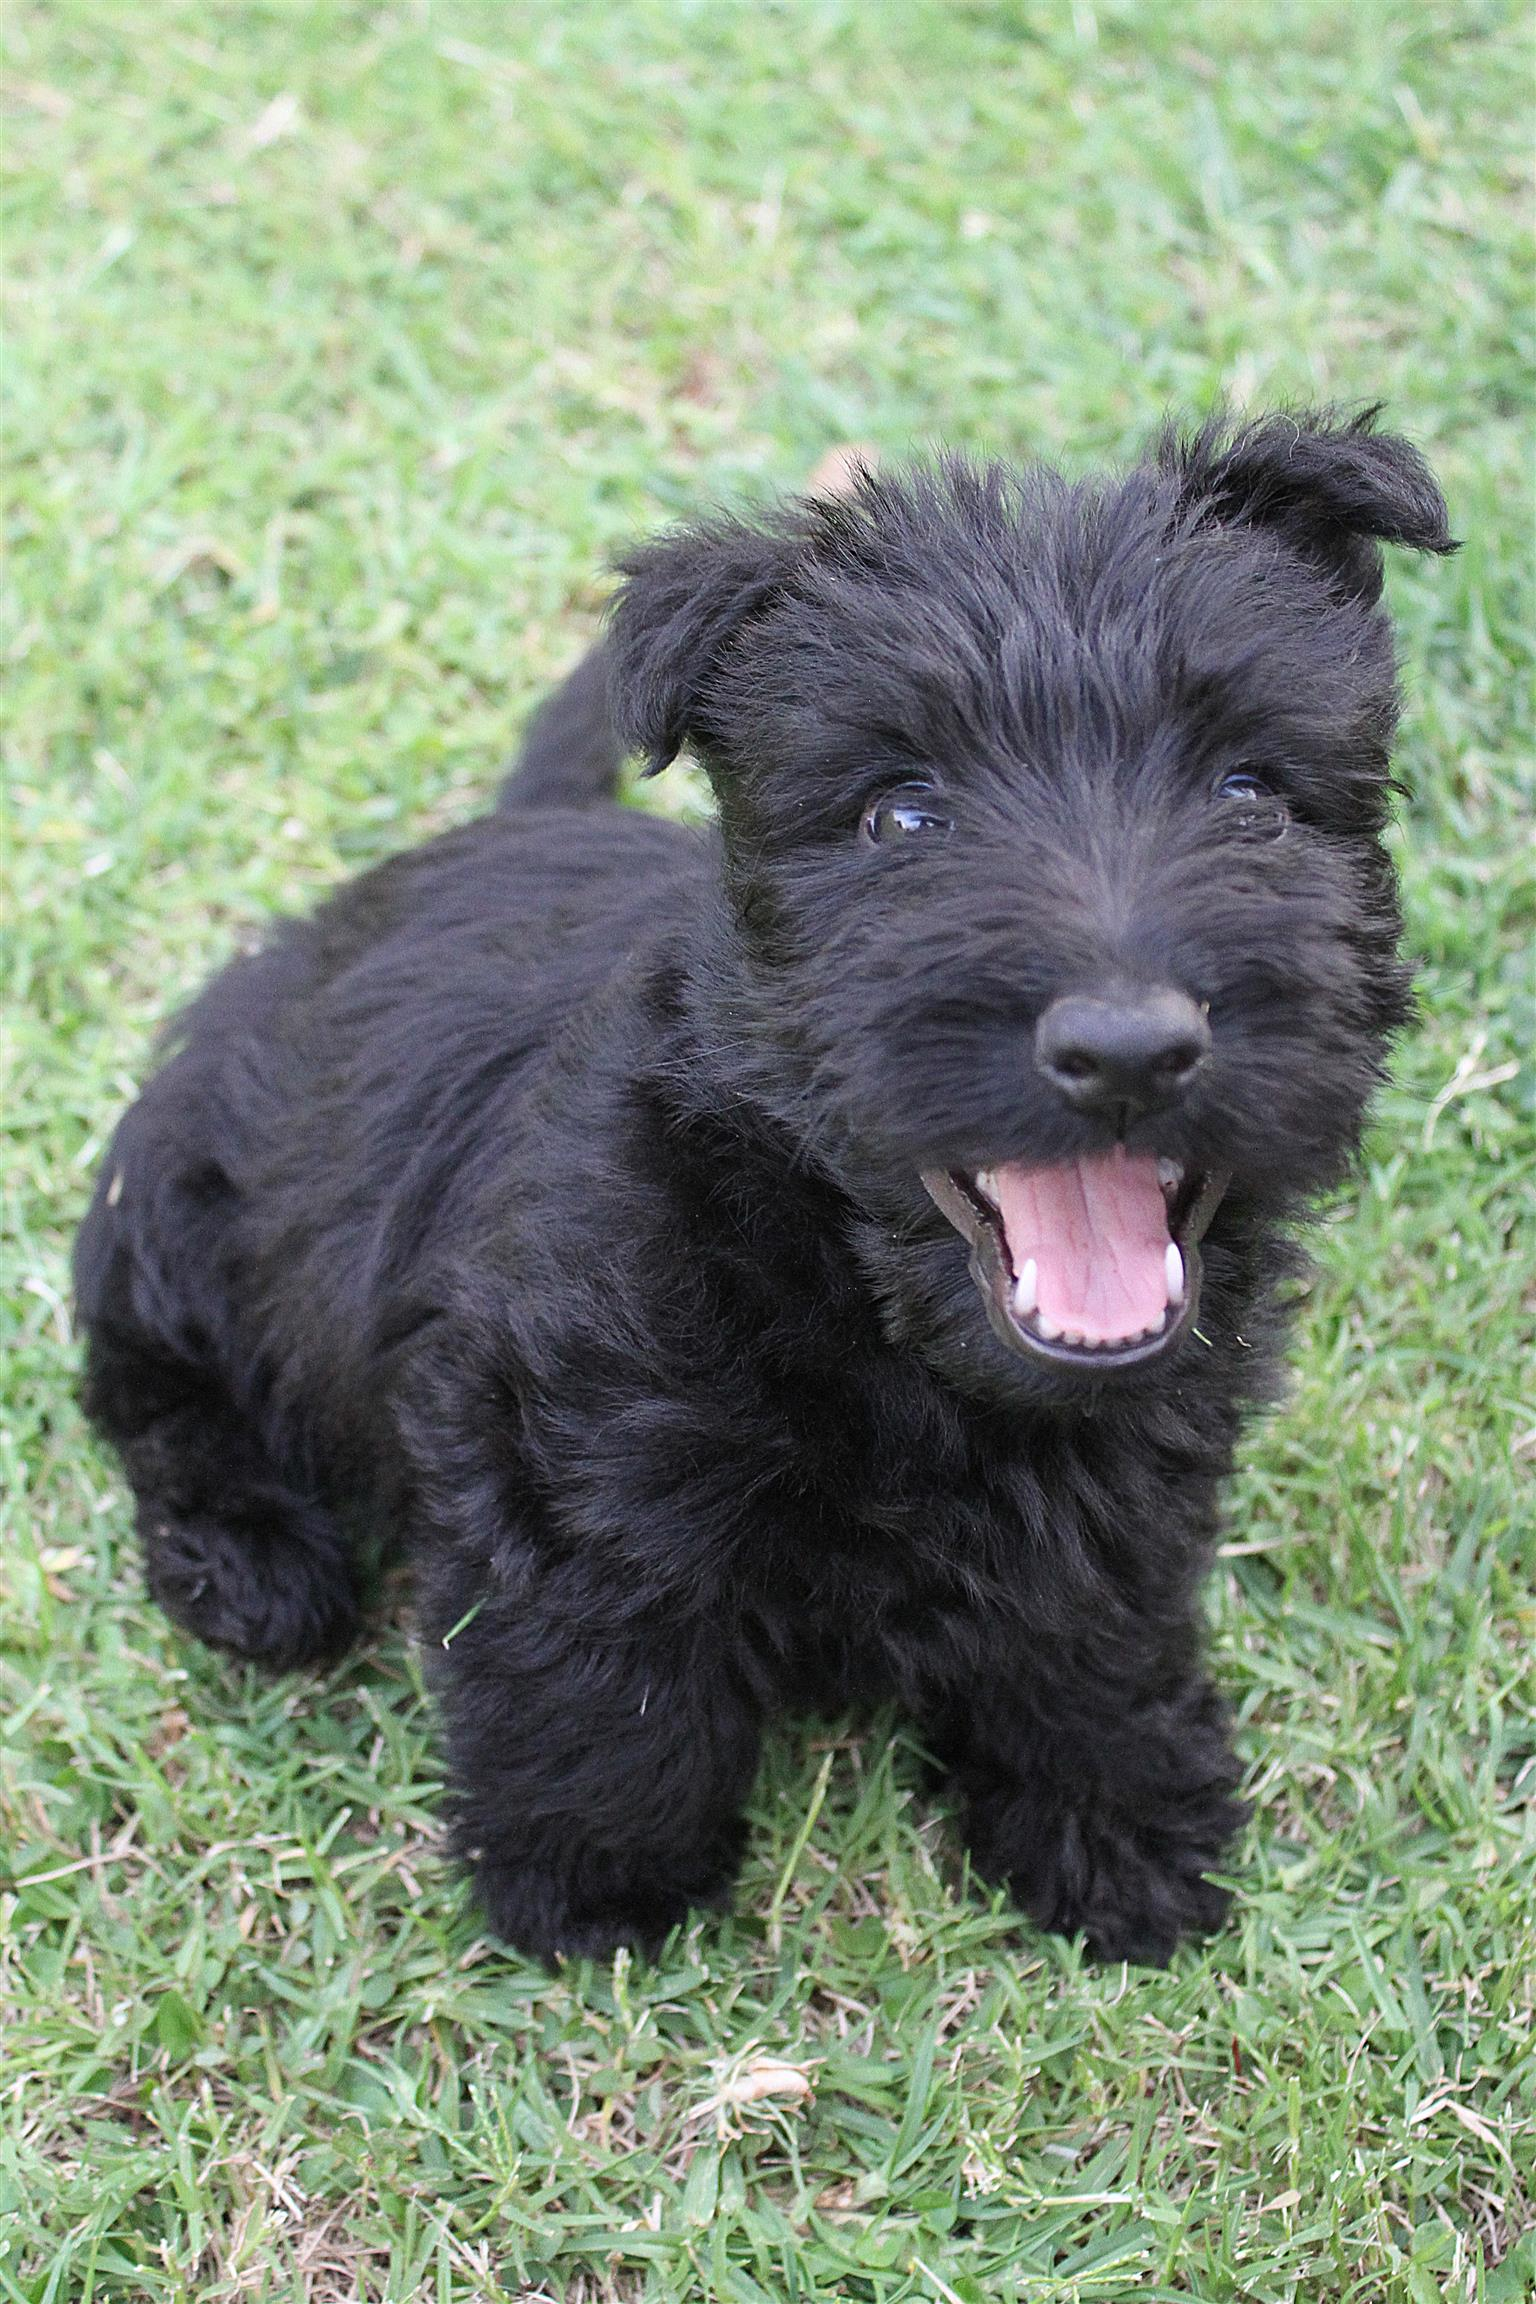 Purebred Scottish Terrier puppies for sale